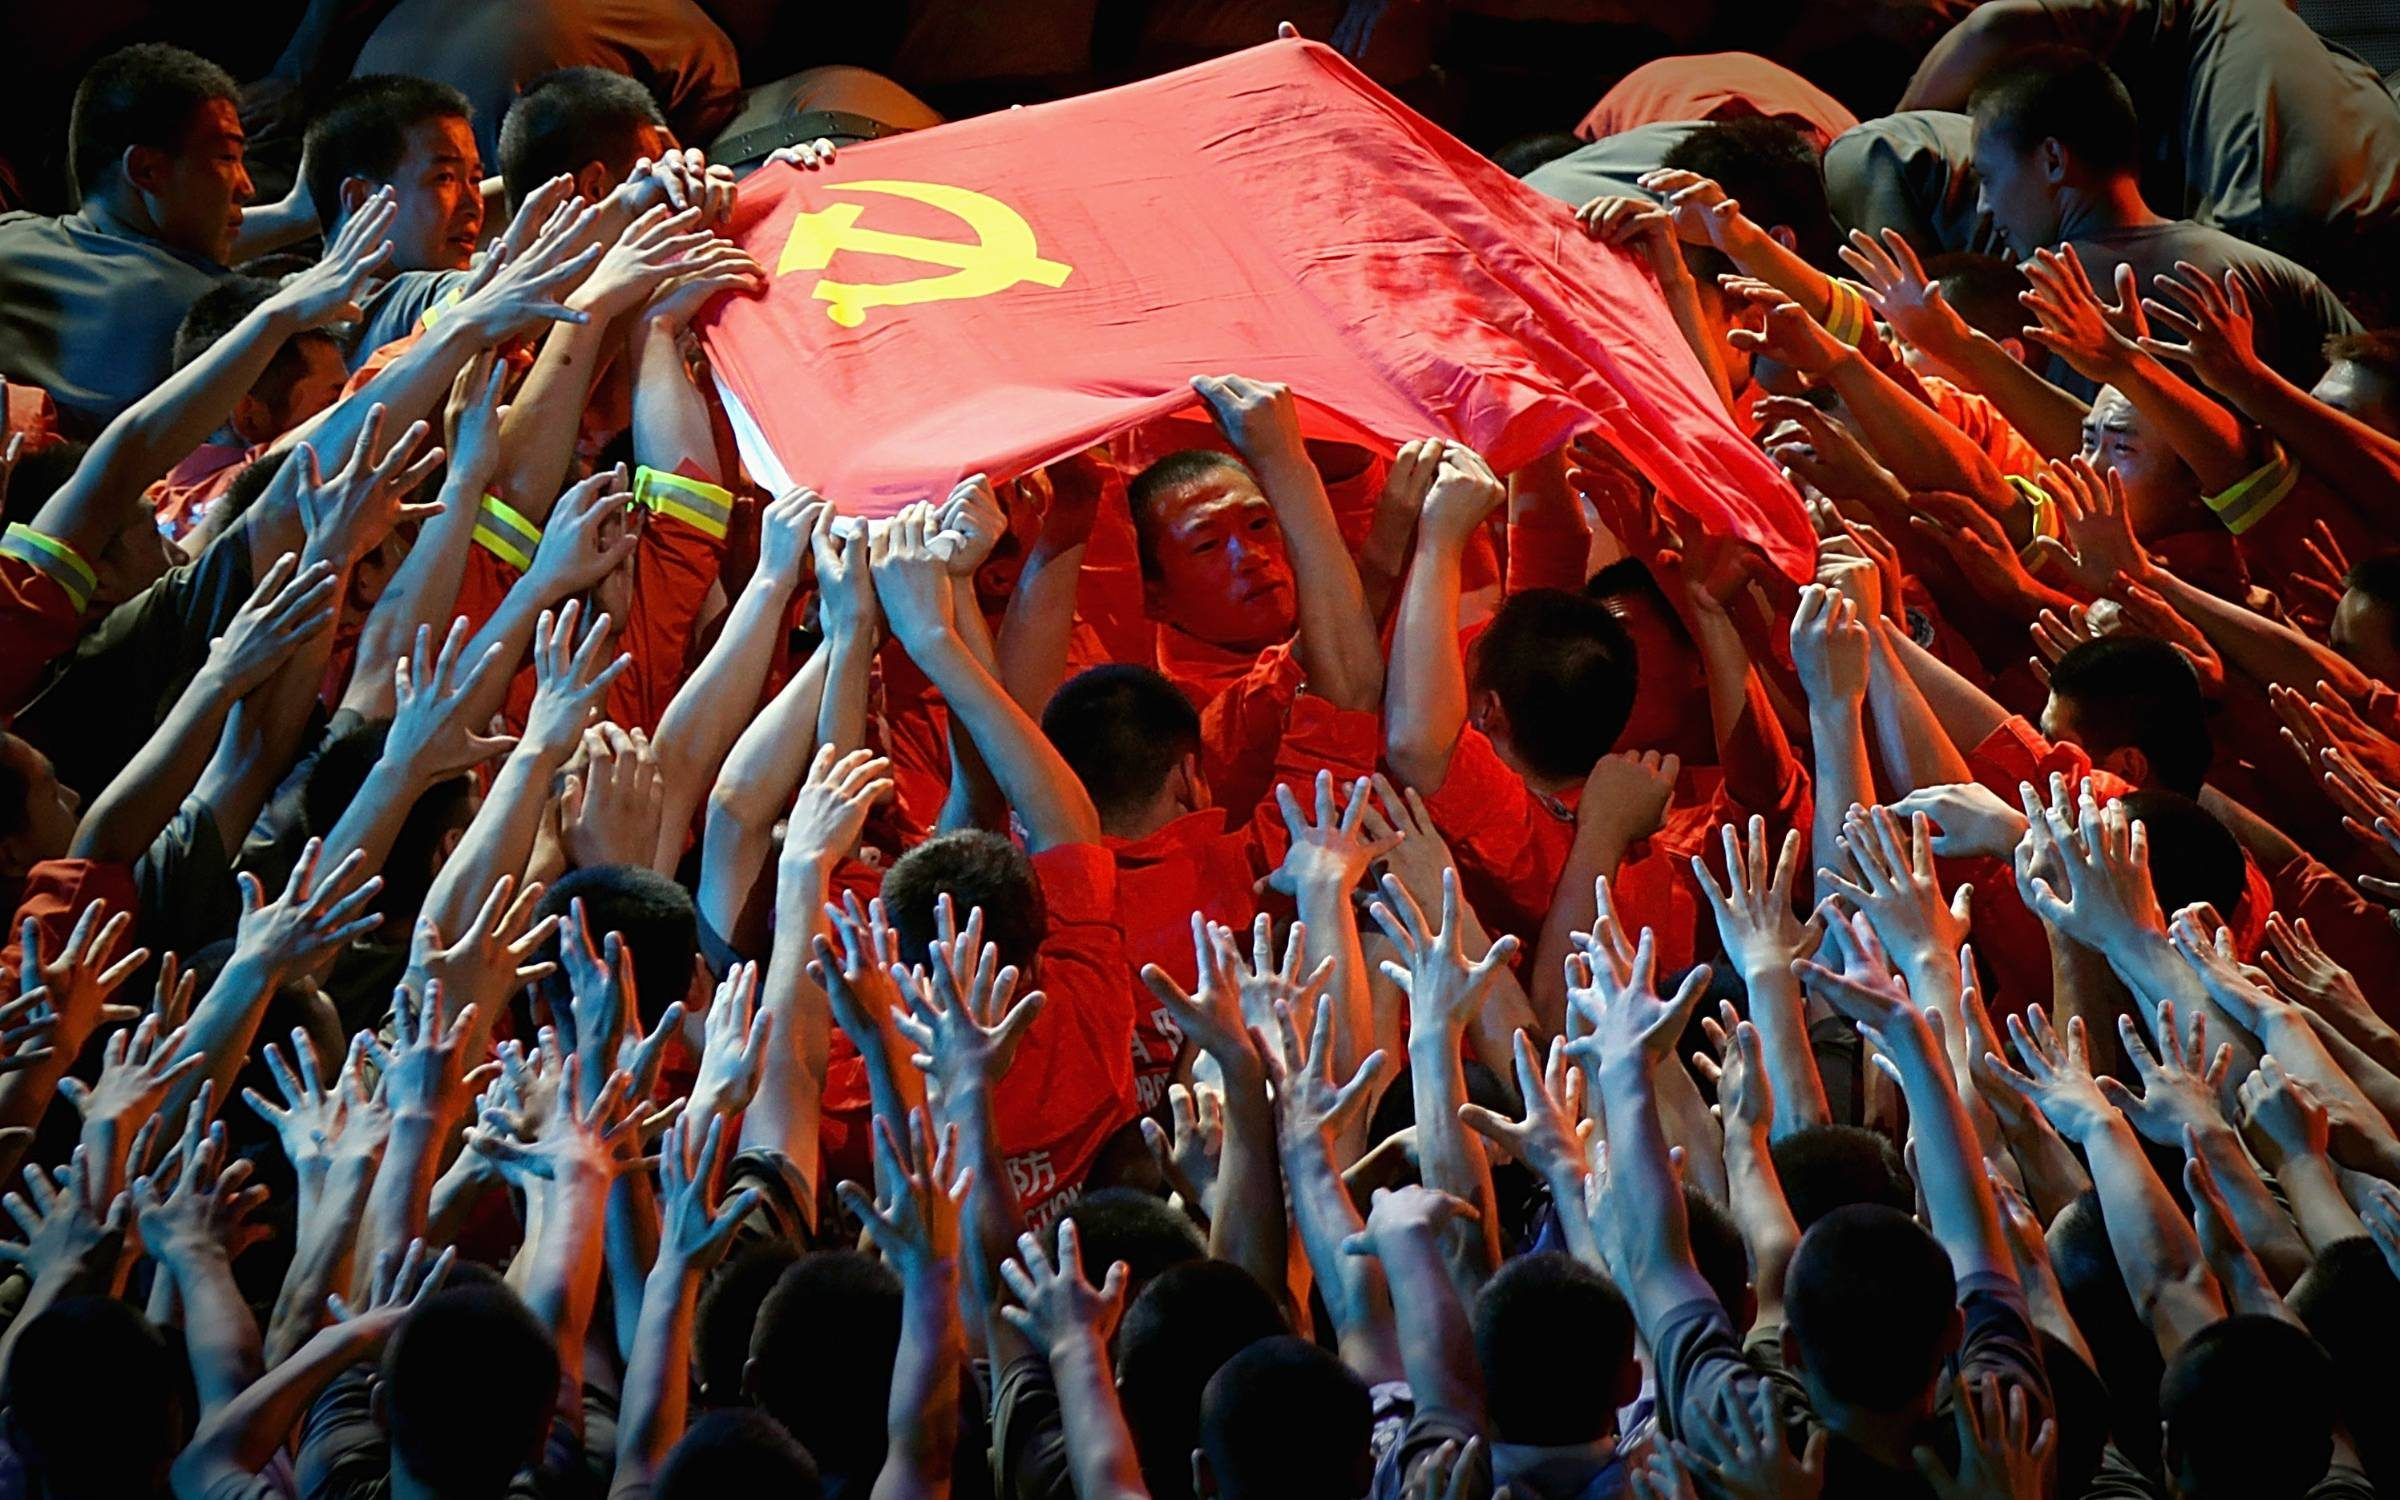 BEIJING, CHINA - JUNE 28: Dancers perform during a gala show to celebrate the 90th anniversary of the founding of the Communist Party of China (CPC) in the Great Hall of the People on June 28, 2011 in Beijing, China. This year's celebrations will mark the 90th anniversary of the founding of the CPC. (Photo by Feng Li/Getty Images)